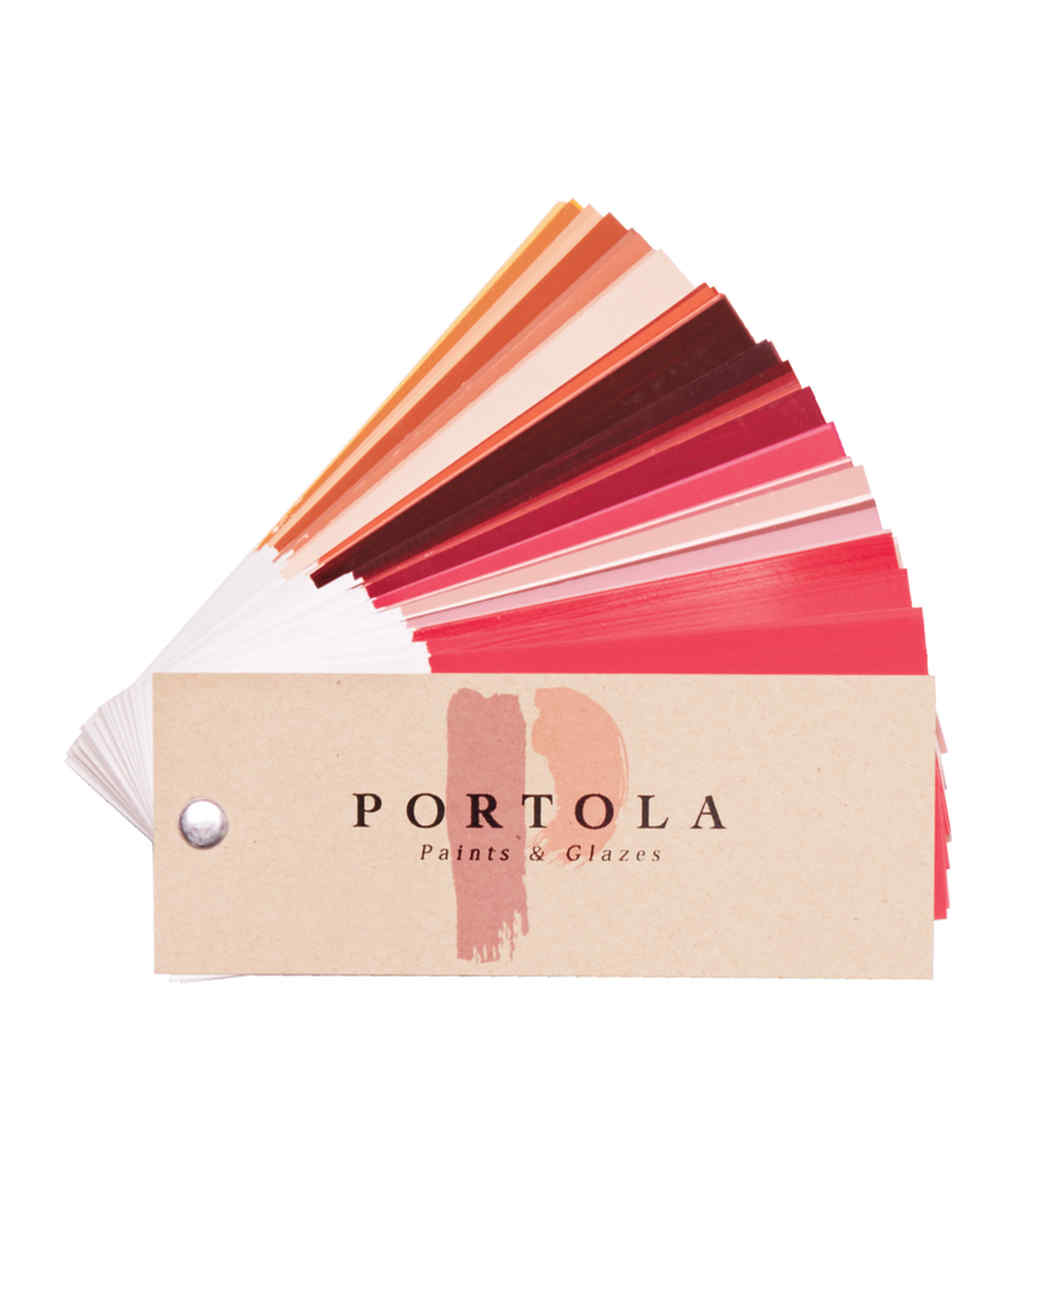 american-made-portola-paints-and-glazes-131-d112572.jpg